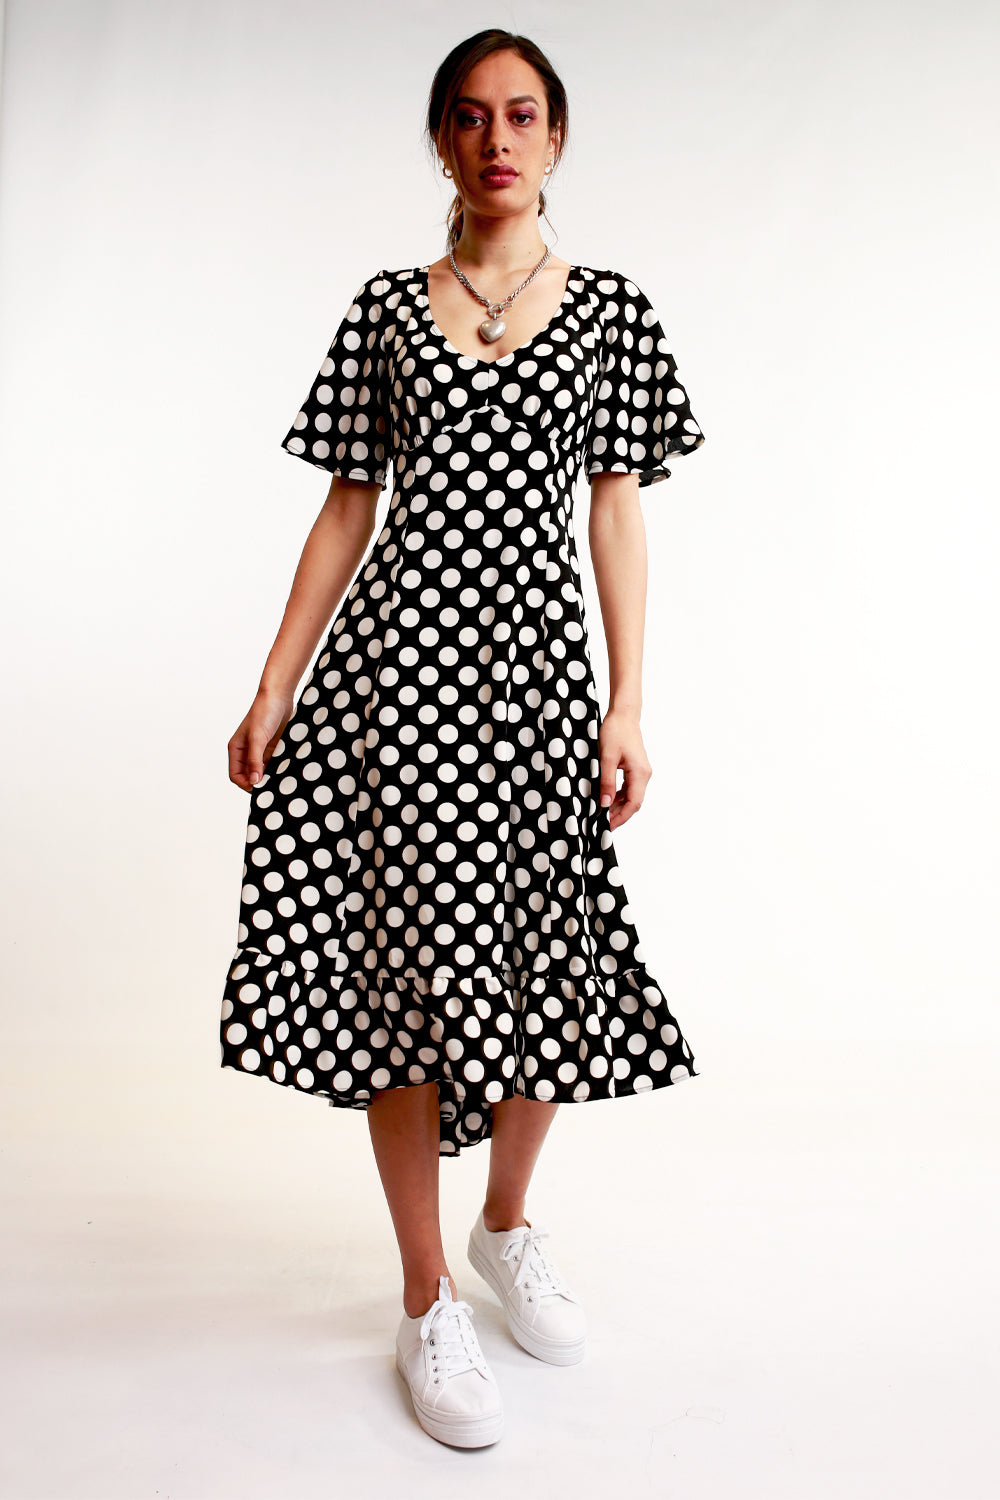 Sweet Jude Dress - SALE